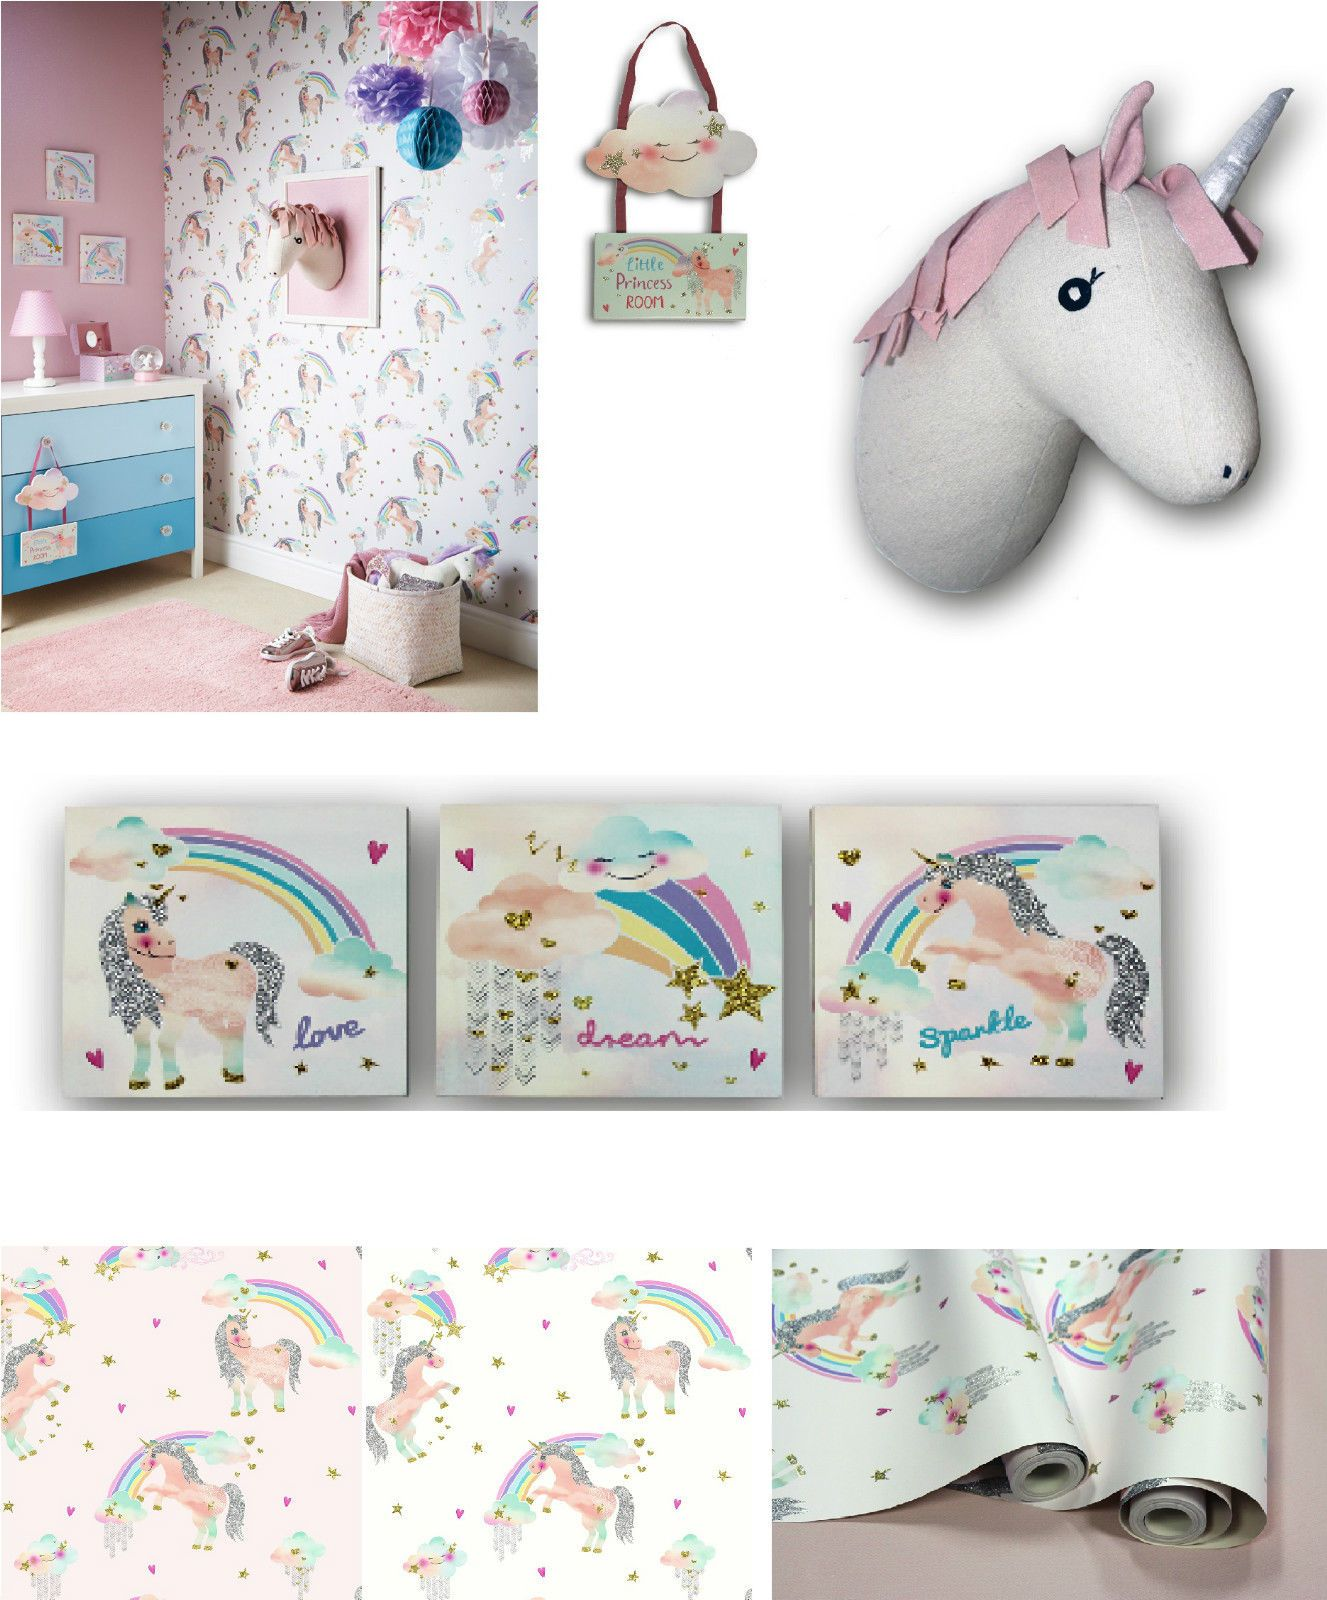 Details About Rainbow Unicorn Pretty Bedroom Room Glitter Wallpaper Matching Accessories Glitter Wallpaper Glitter Room Unicorn Nursery Ideas